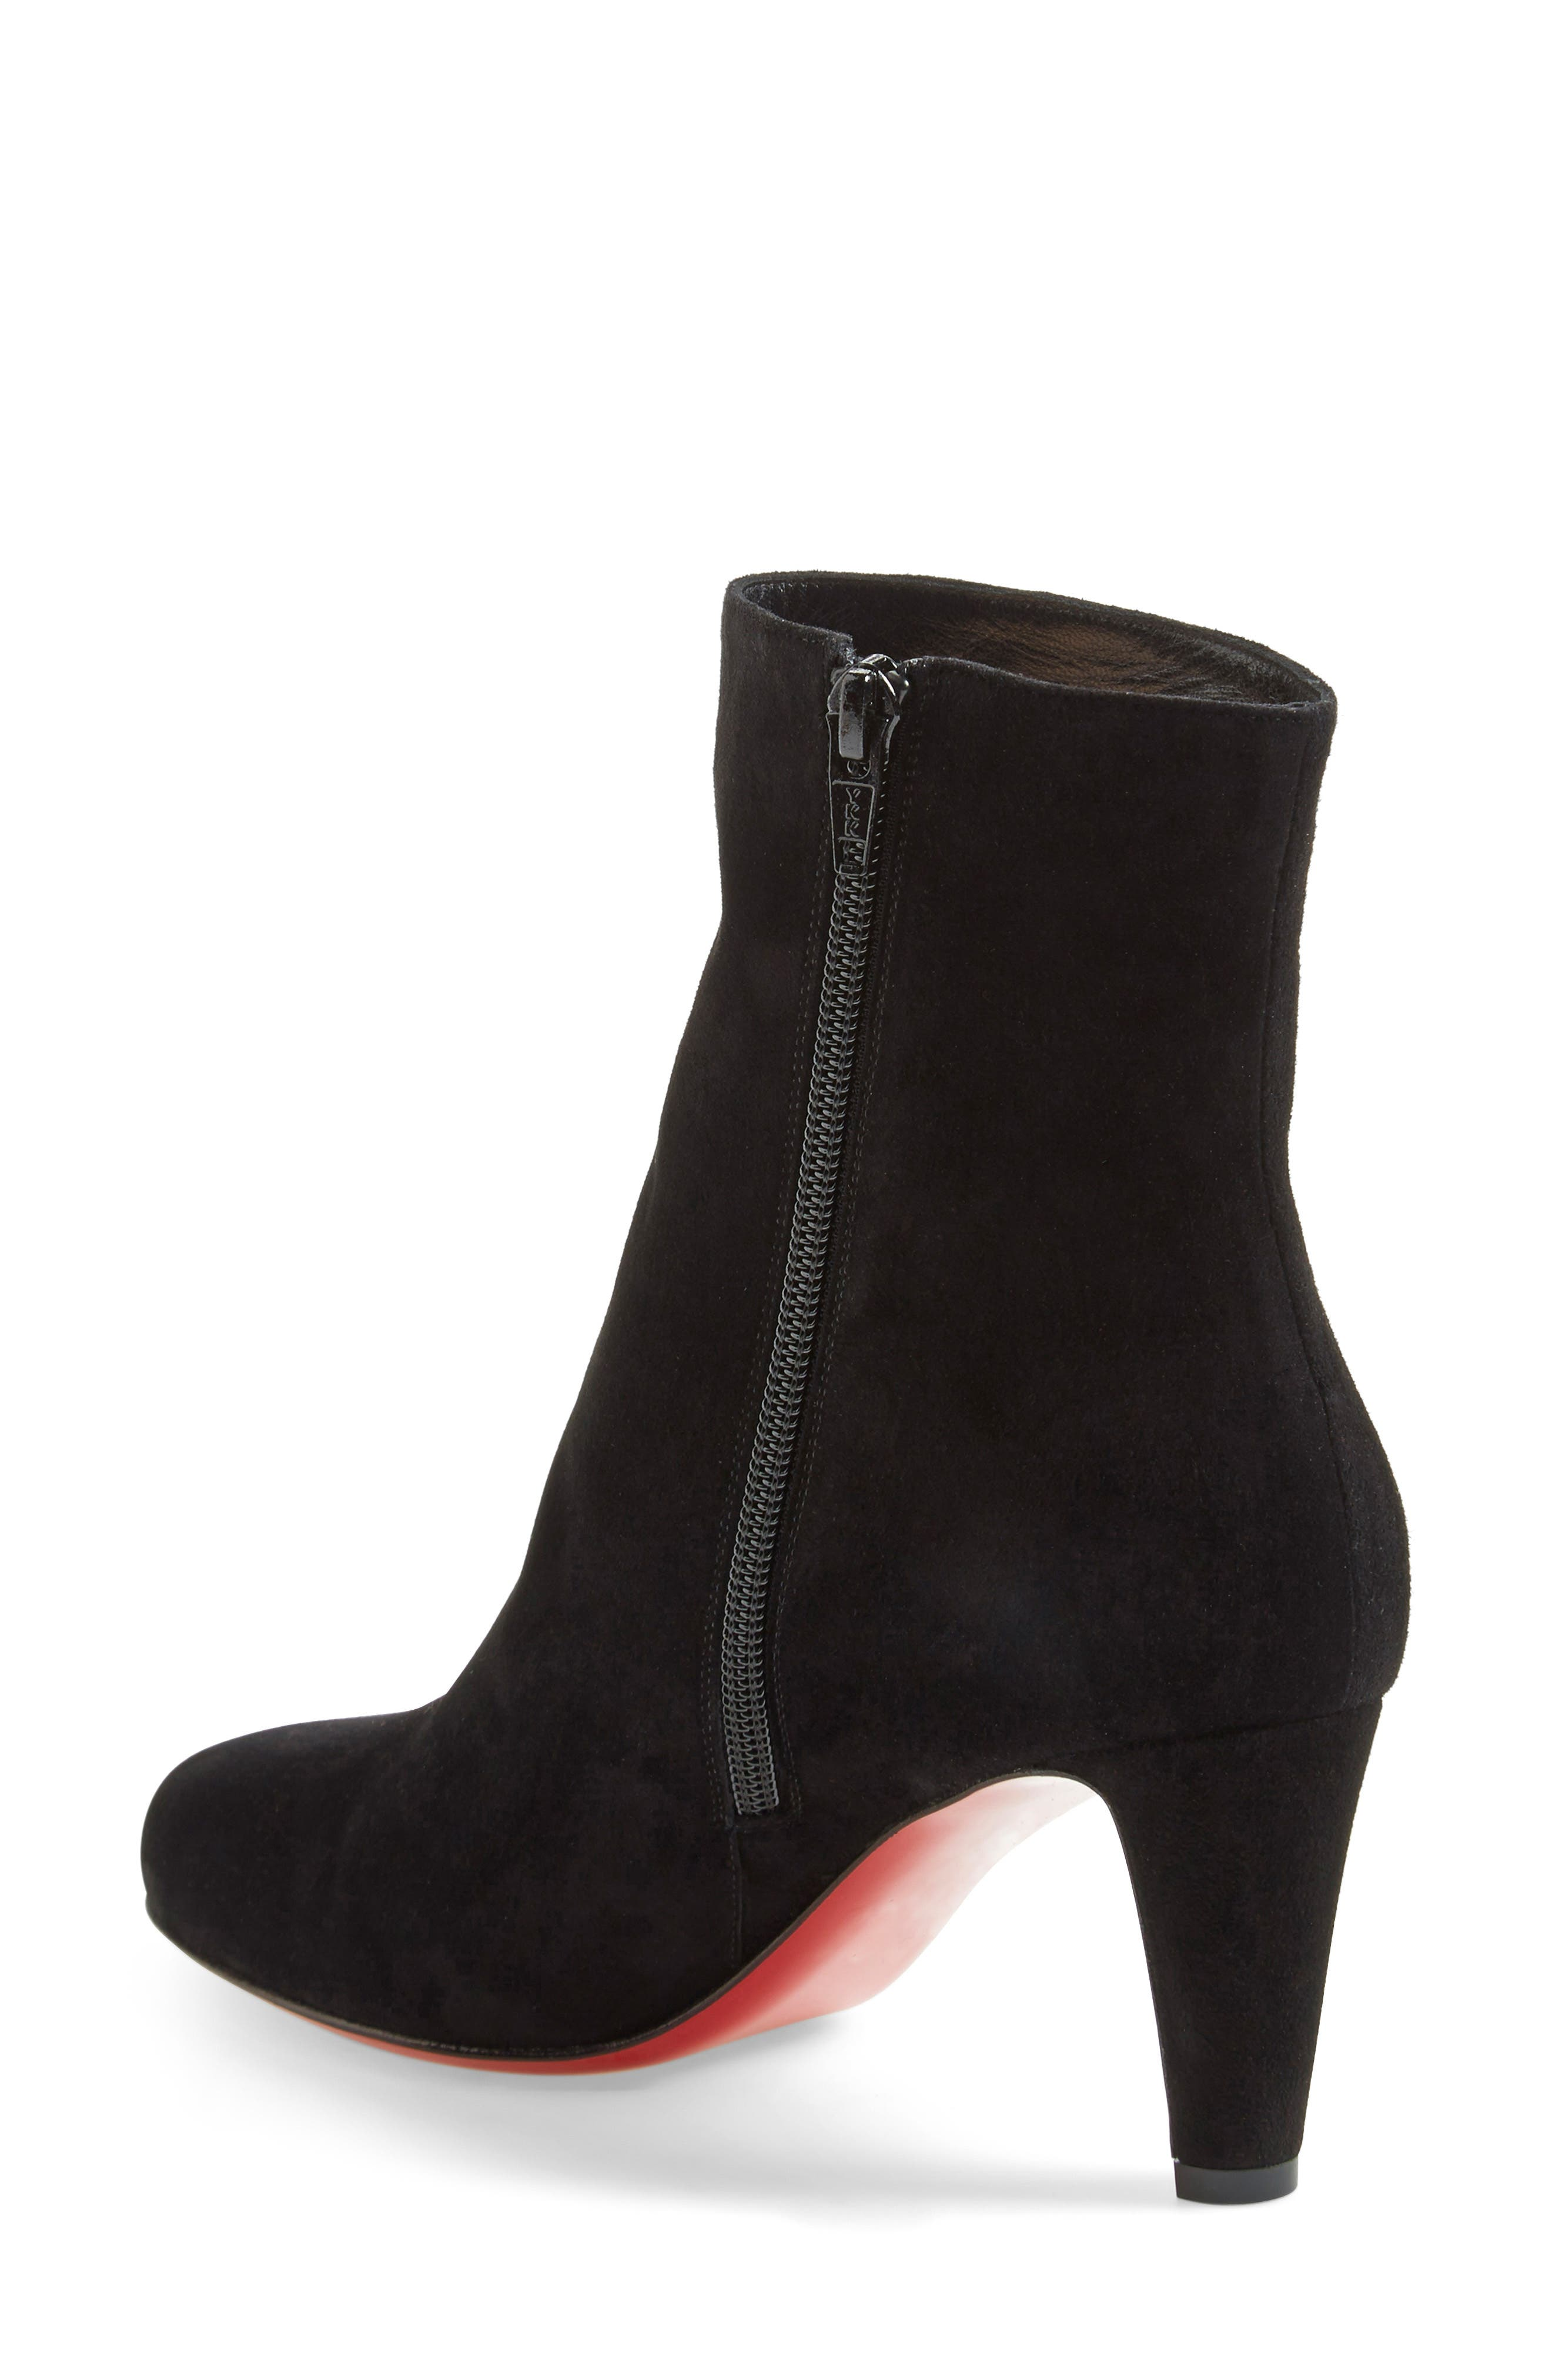 'Top' Ankle Bootie,                             Alternate thumbnail 2, color,                             Black Suede